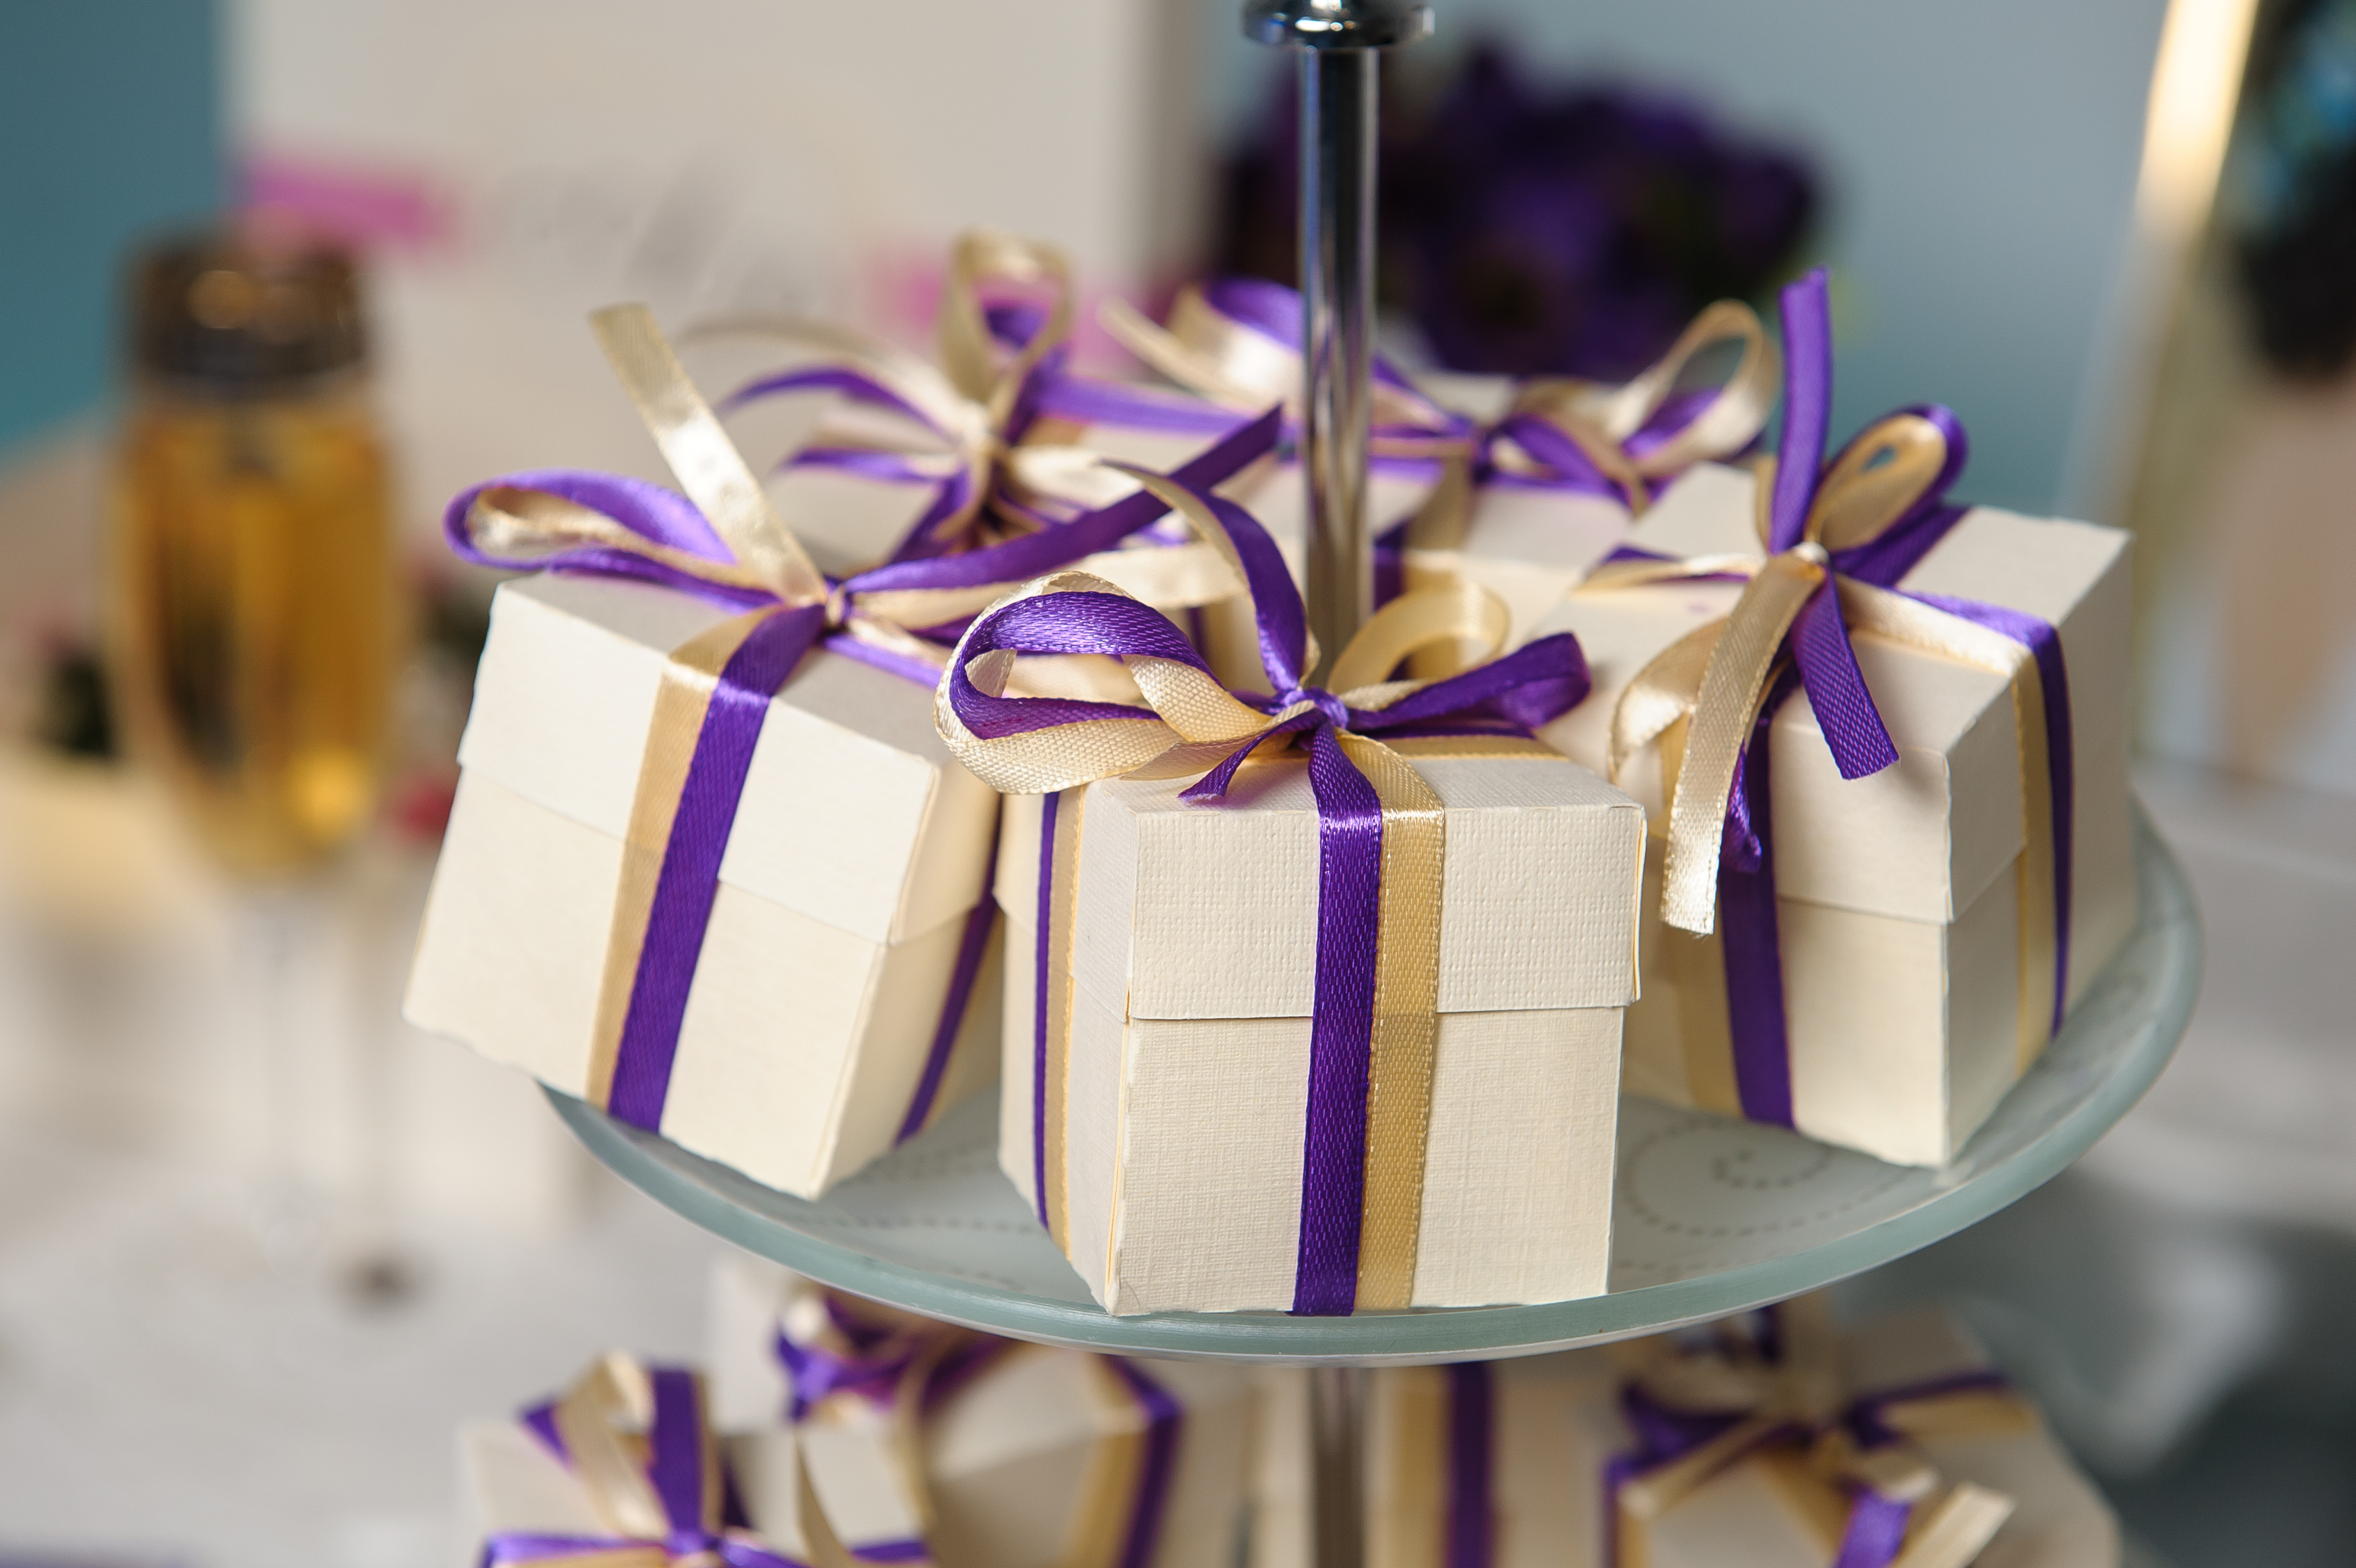 blog unique wedding favors Wedding favors have been found to date back as early as 16th Century England Love Knots constructed from ribbon and lace were a common gift given to